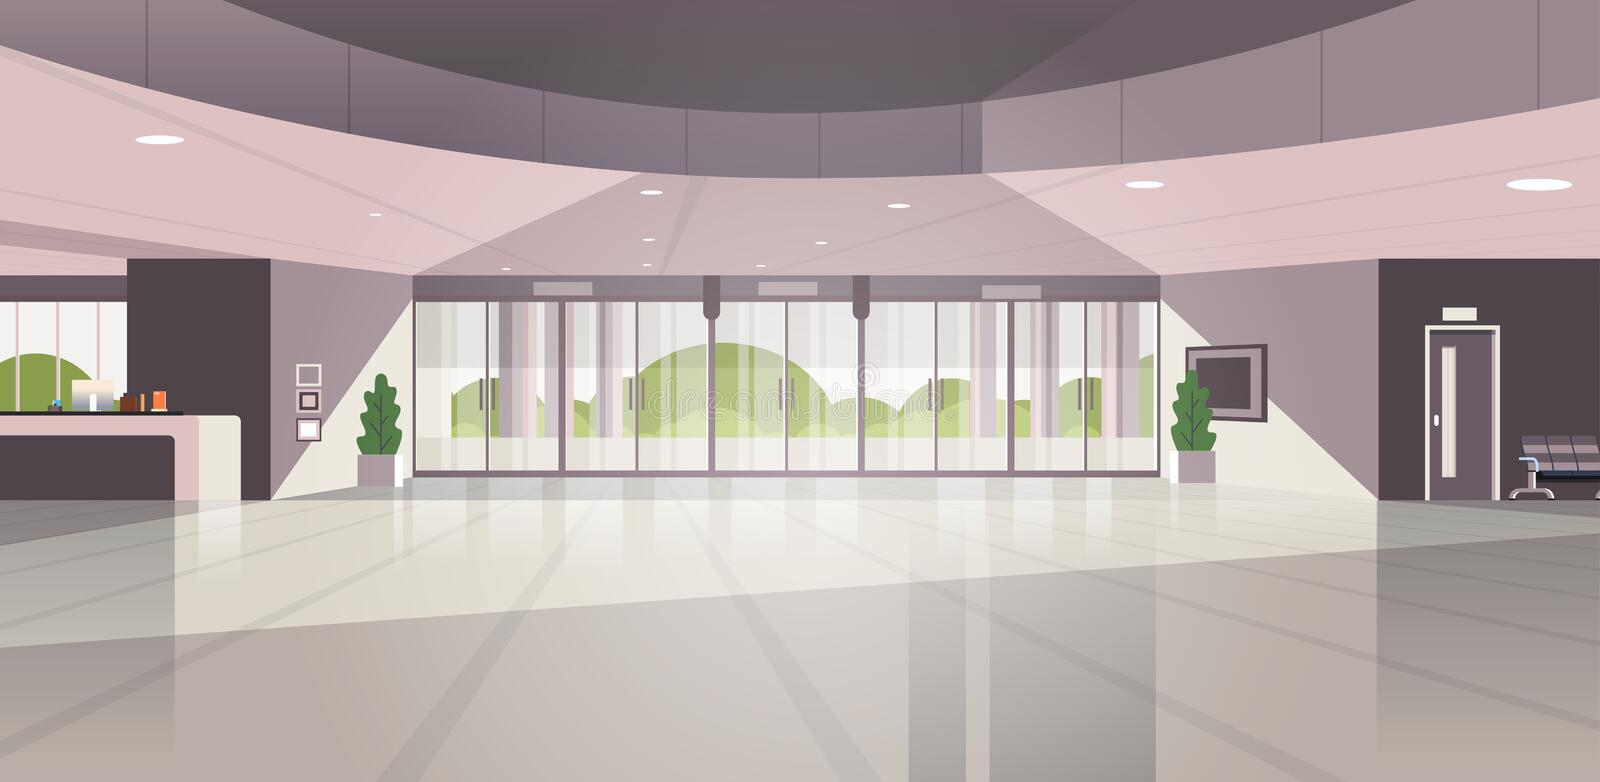 Modern reception area empty no people lobby contemporary hotel hall interior flat horizontal vector illustration